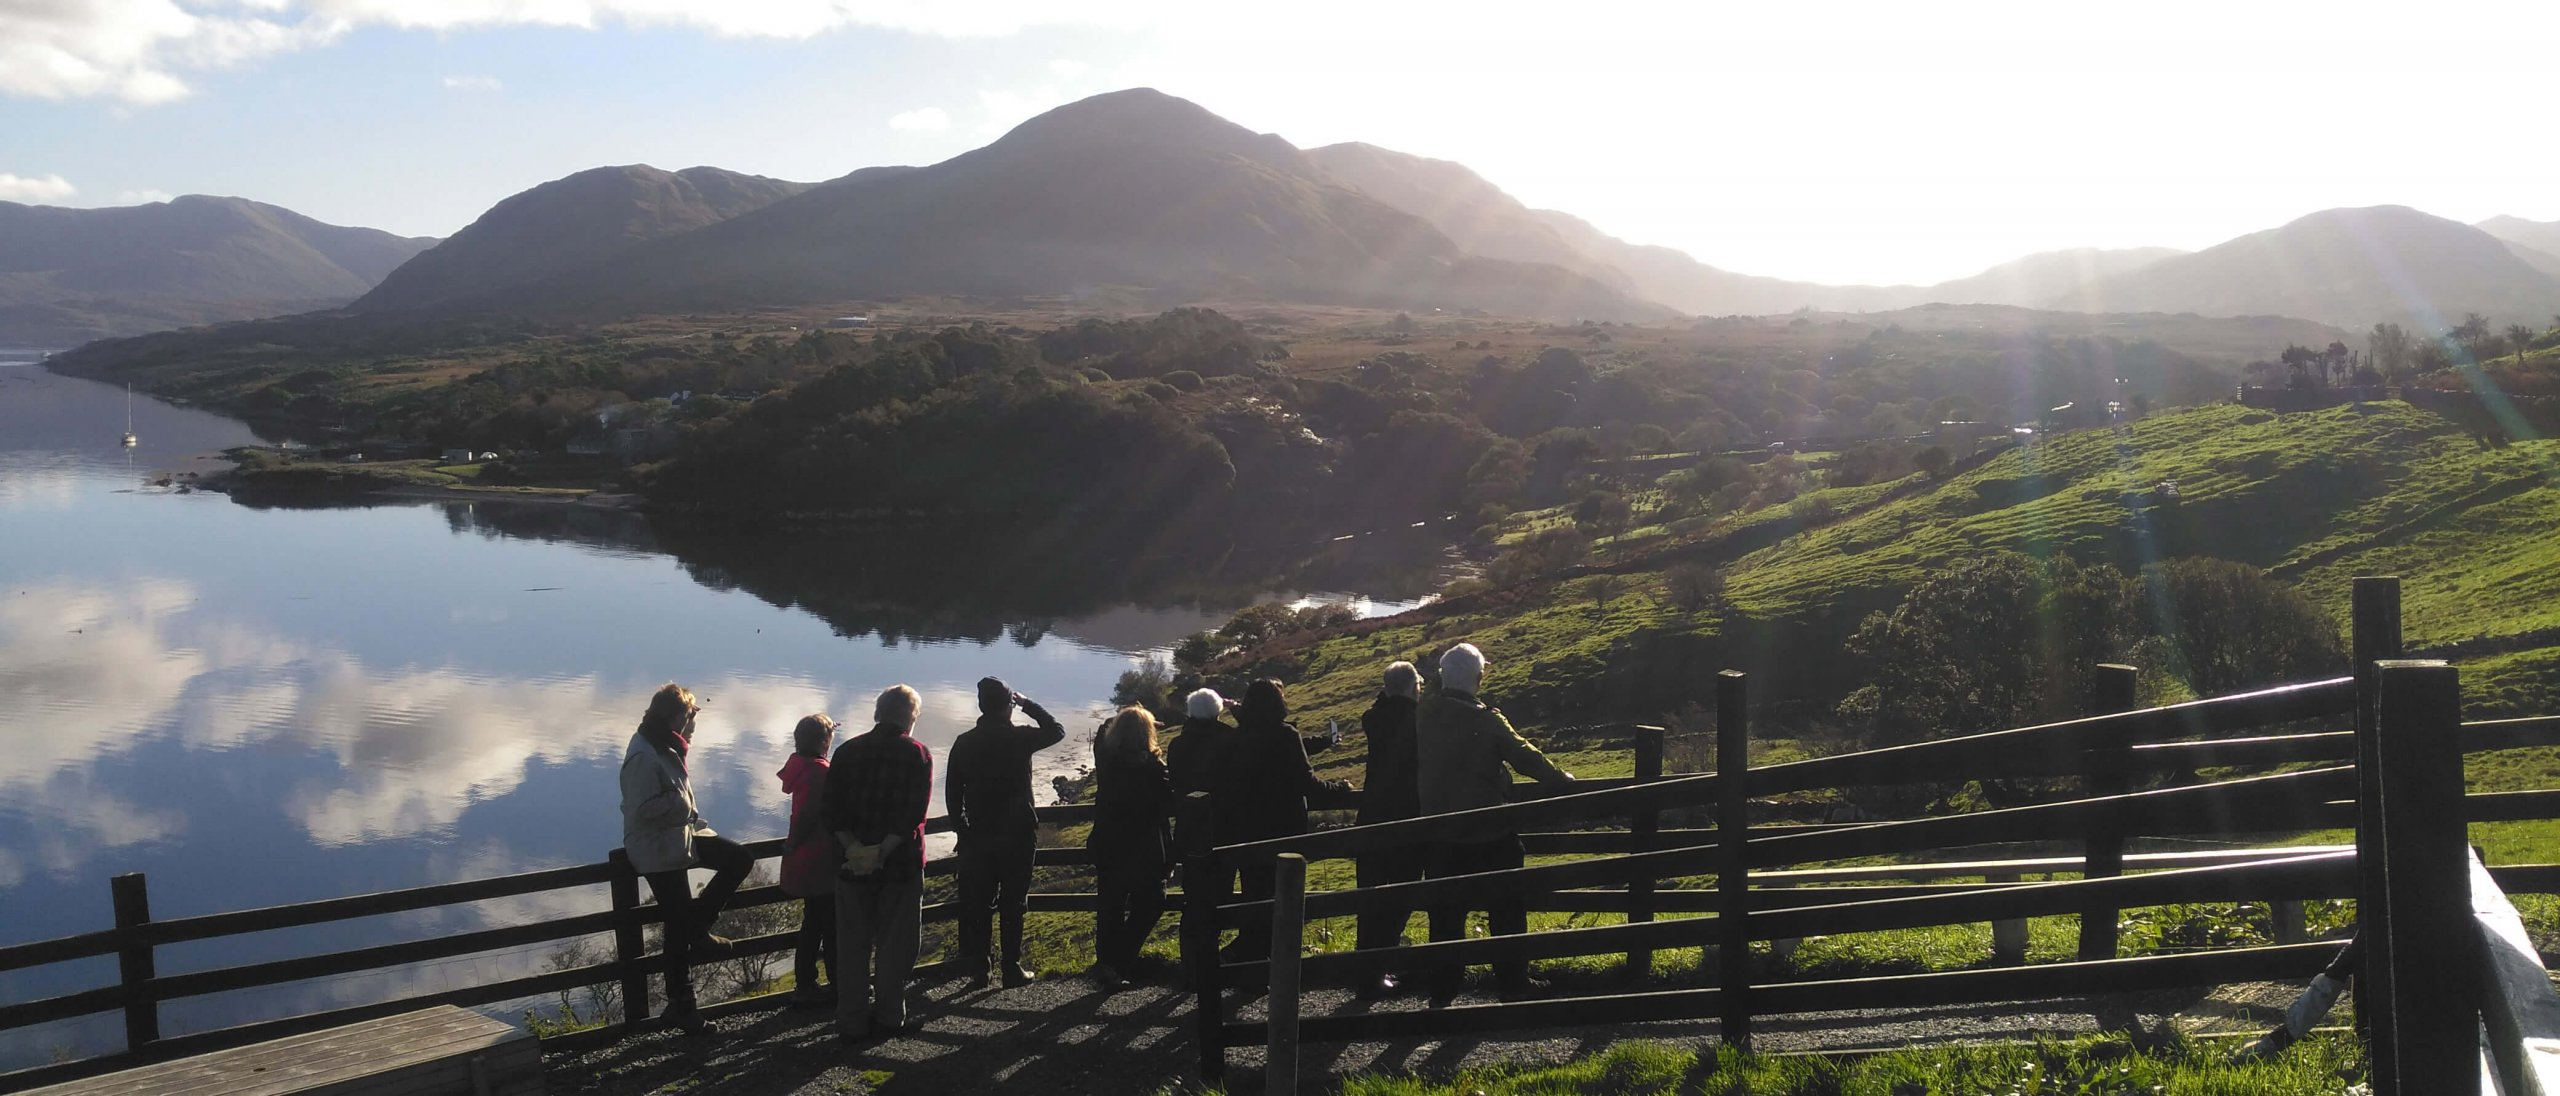 Driftwood Tour Group gazing out over scenic Killary Harbour/Fjord from Tom Nee's sheep farm in Ireland